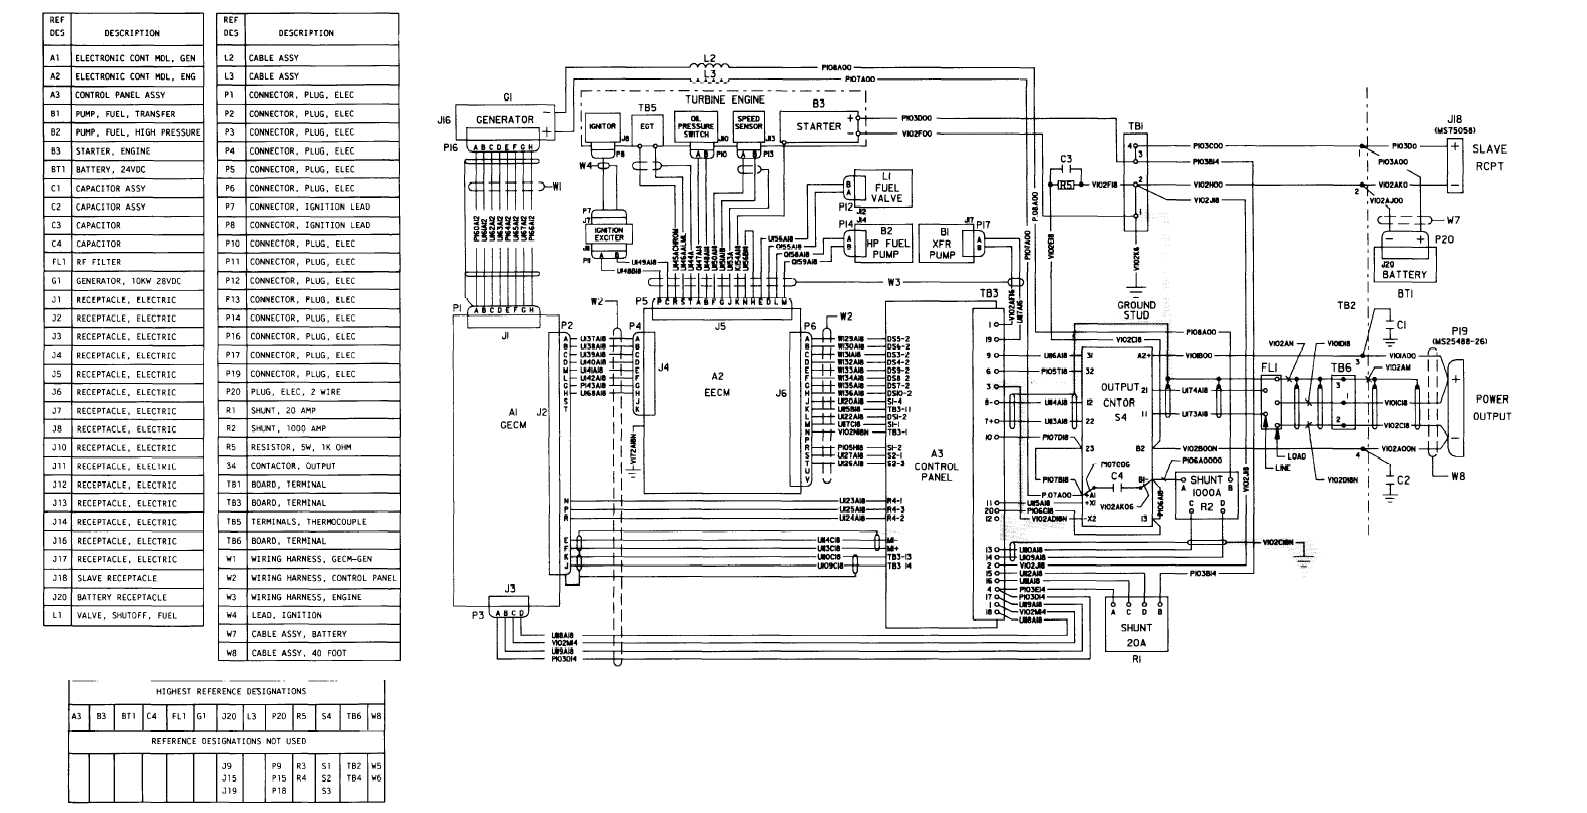 fo 3 generator set wiring diagram tm 5 6115 612 12 marine corps tm 6115 12 7 air force t0 35c2 3 471 1 navy ag 320b0 0mm 000 fo 3 generator set wiring diagram change 1 fp 5 fp 6 blank